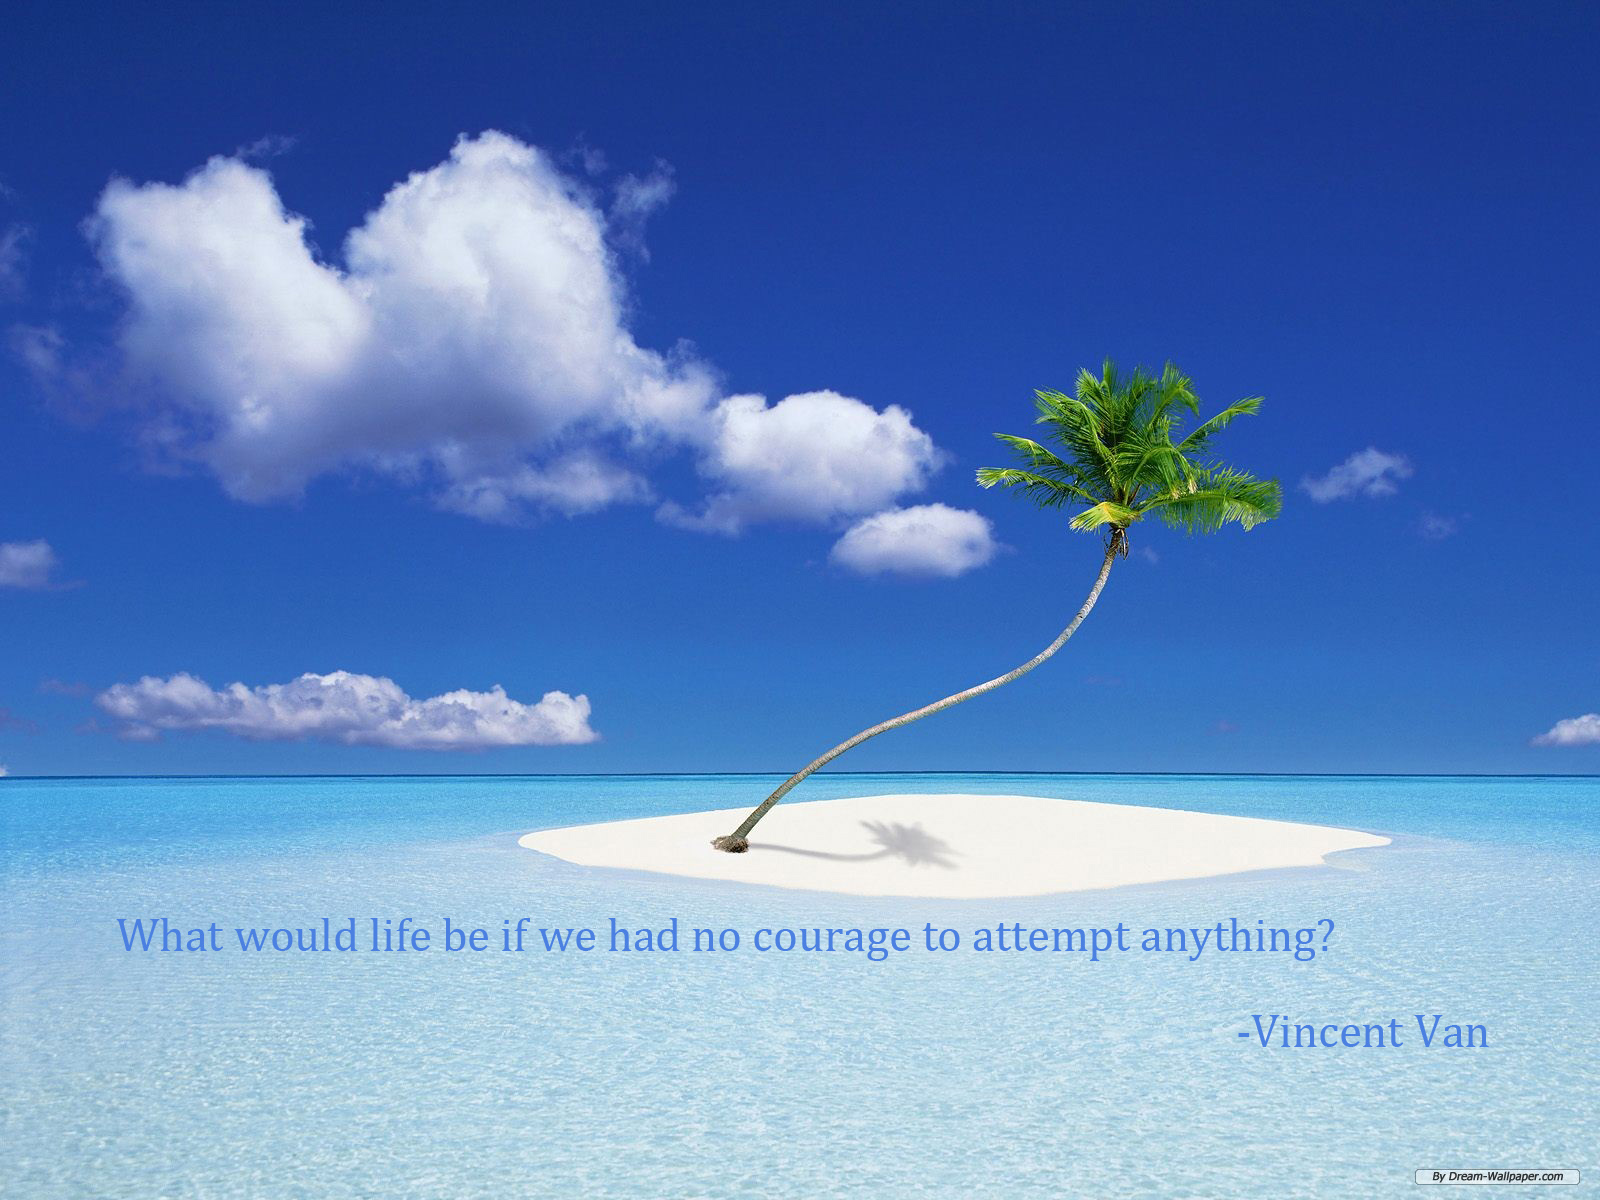 what-would-life-be-if-we-had-no-courage-to-attempt-anything-inspirational-quote